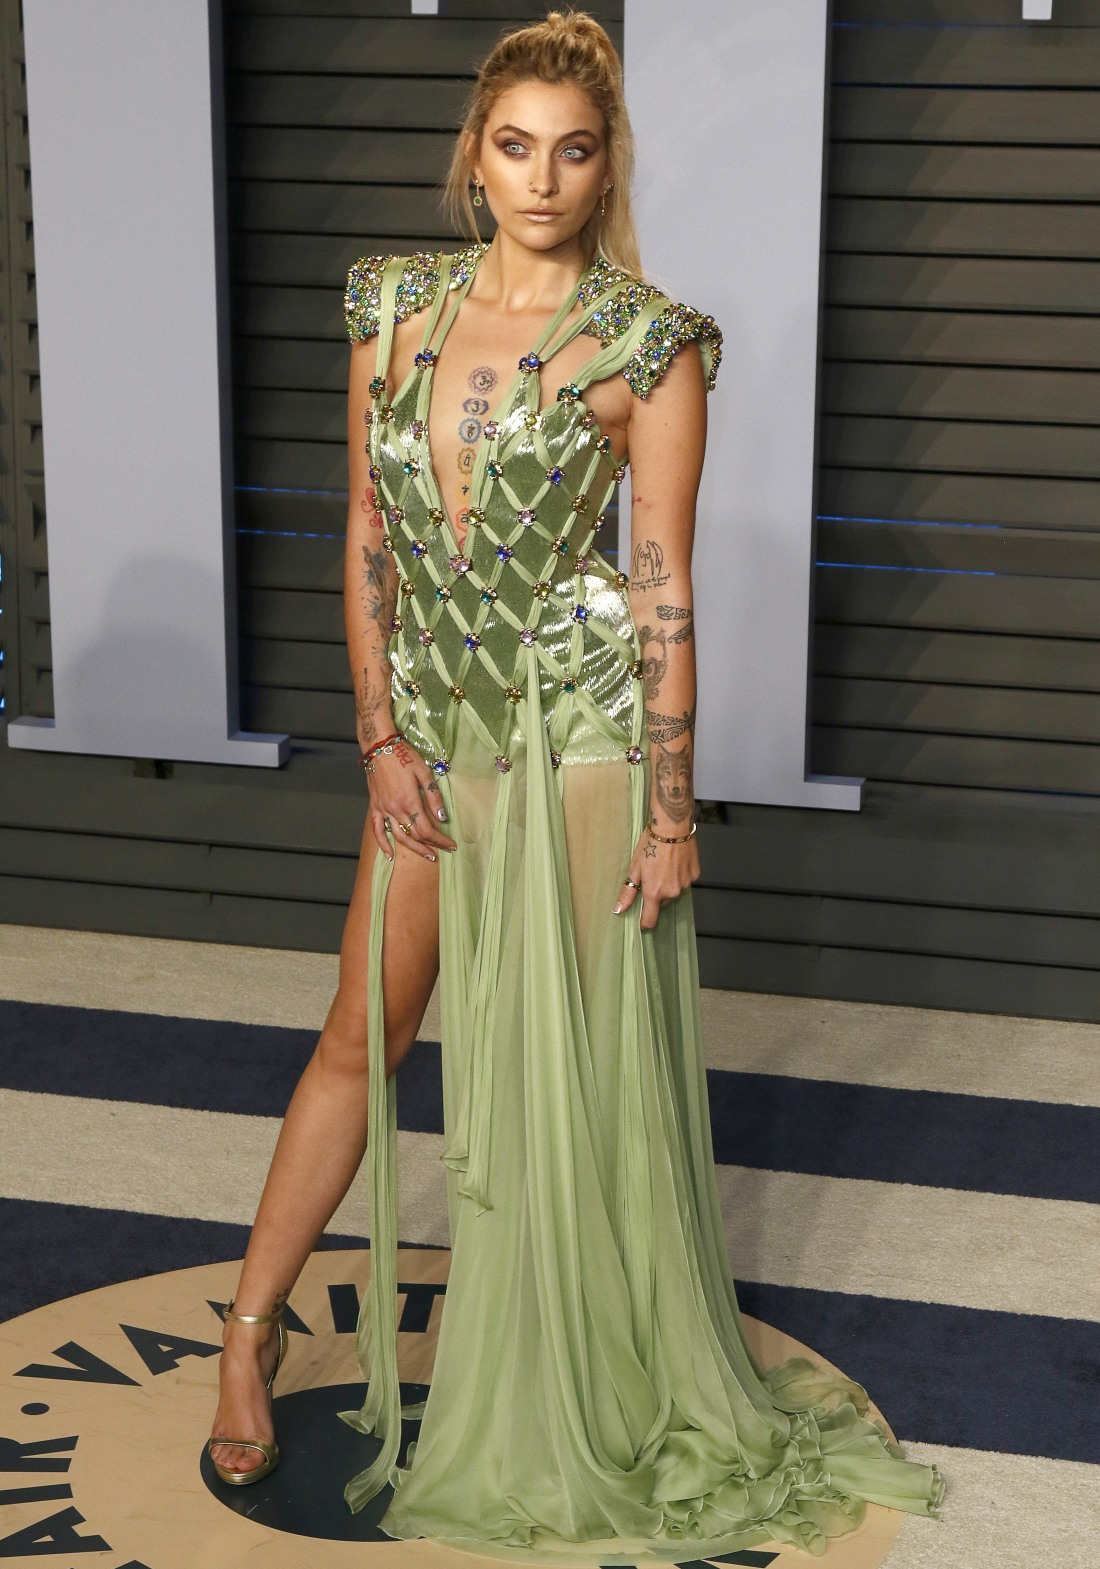 Vanity Fair's 2018 Oscars After Party